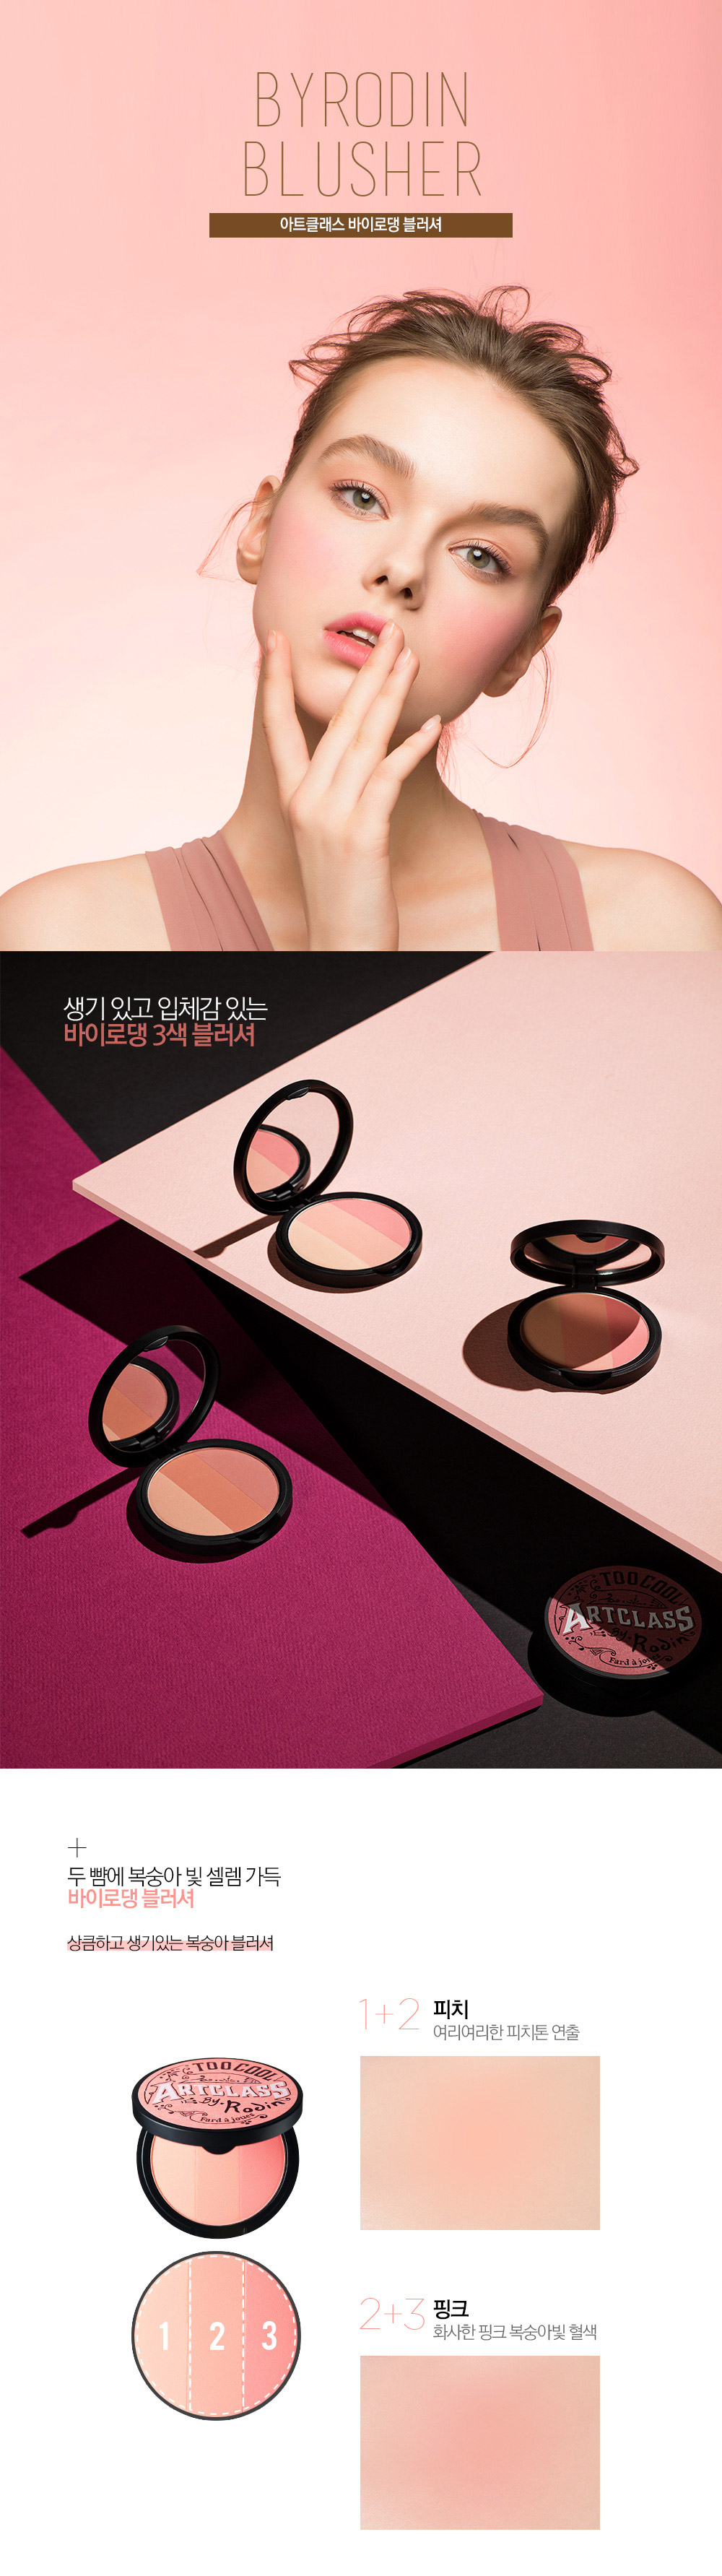 -too-cool-for-school-art-class-by-rodin-blusher11.jpg